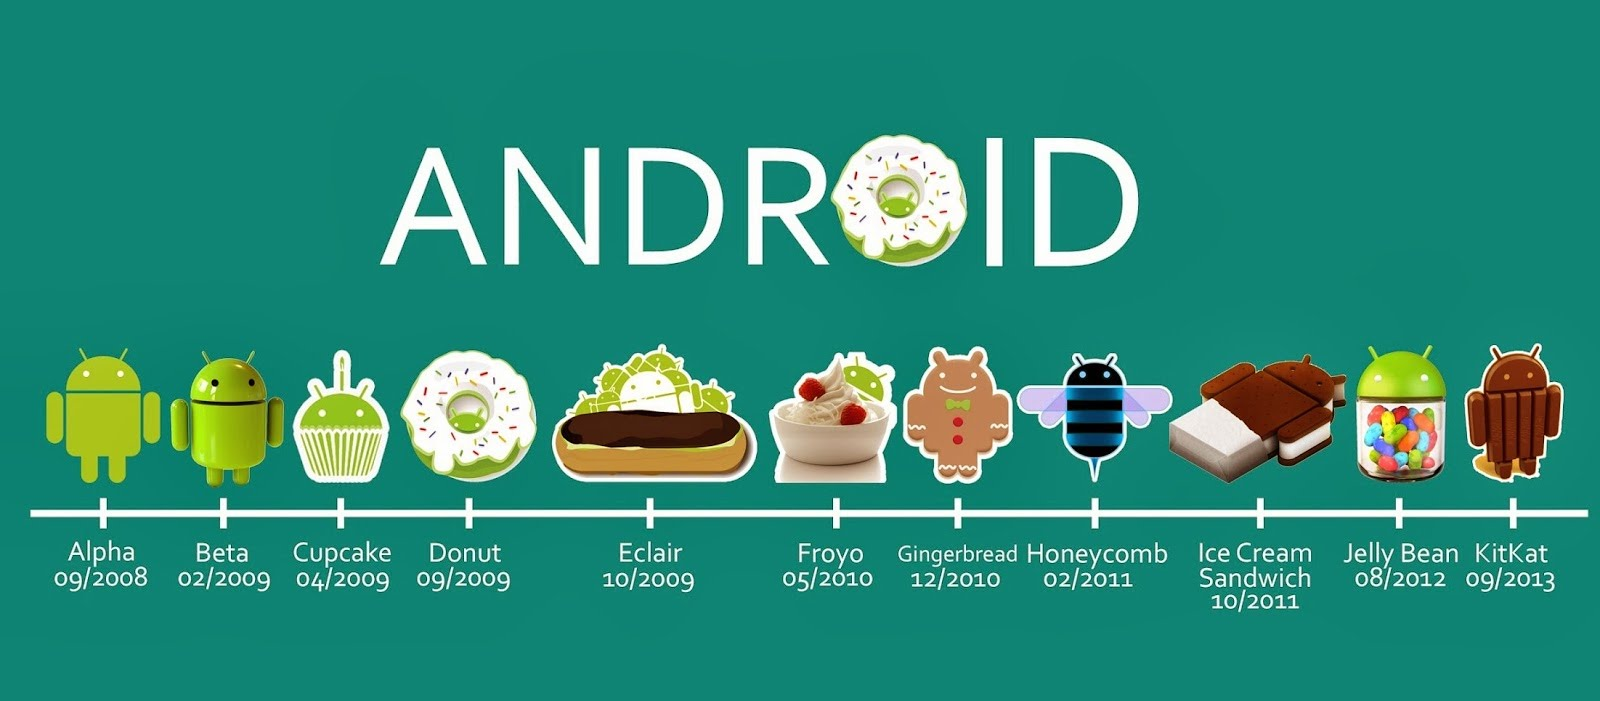 Android Version History - Every OS from Cupcake to Lollipop